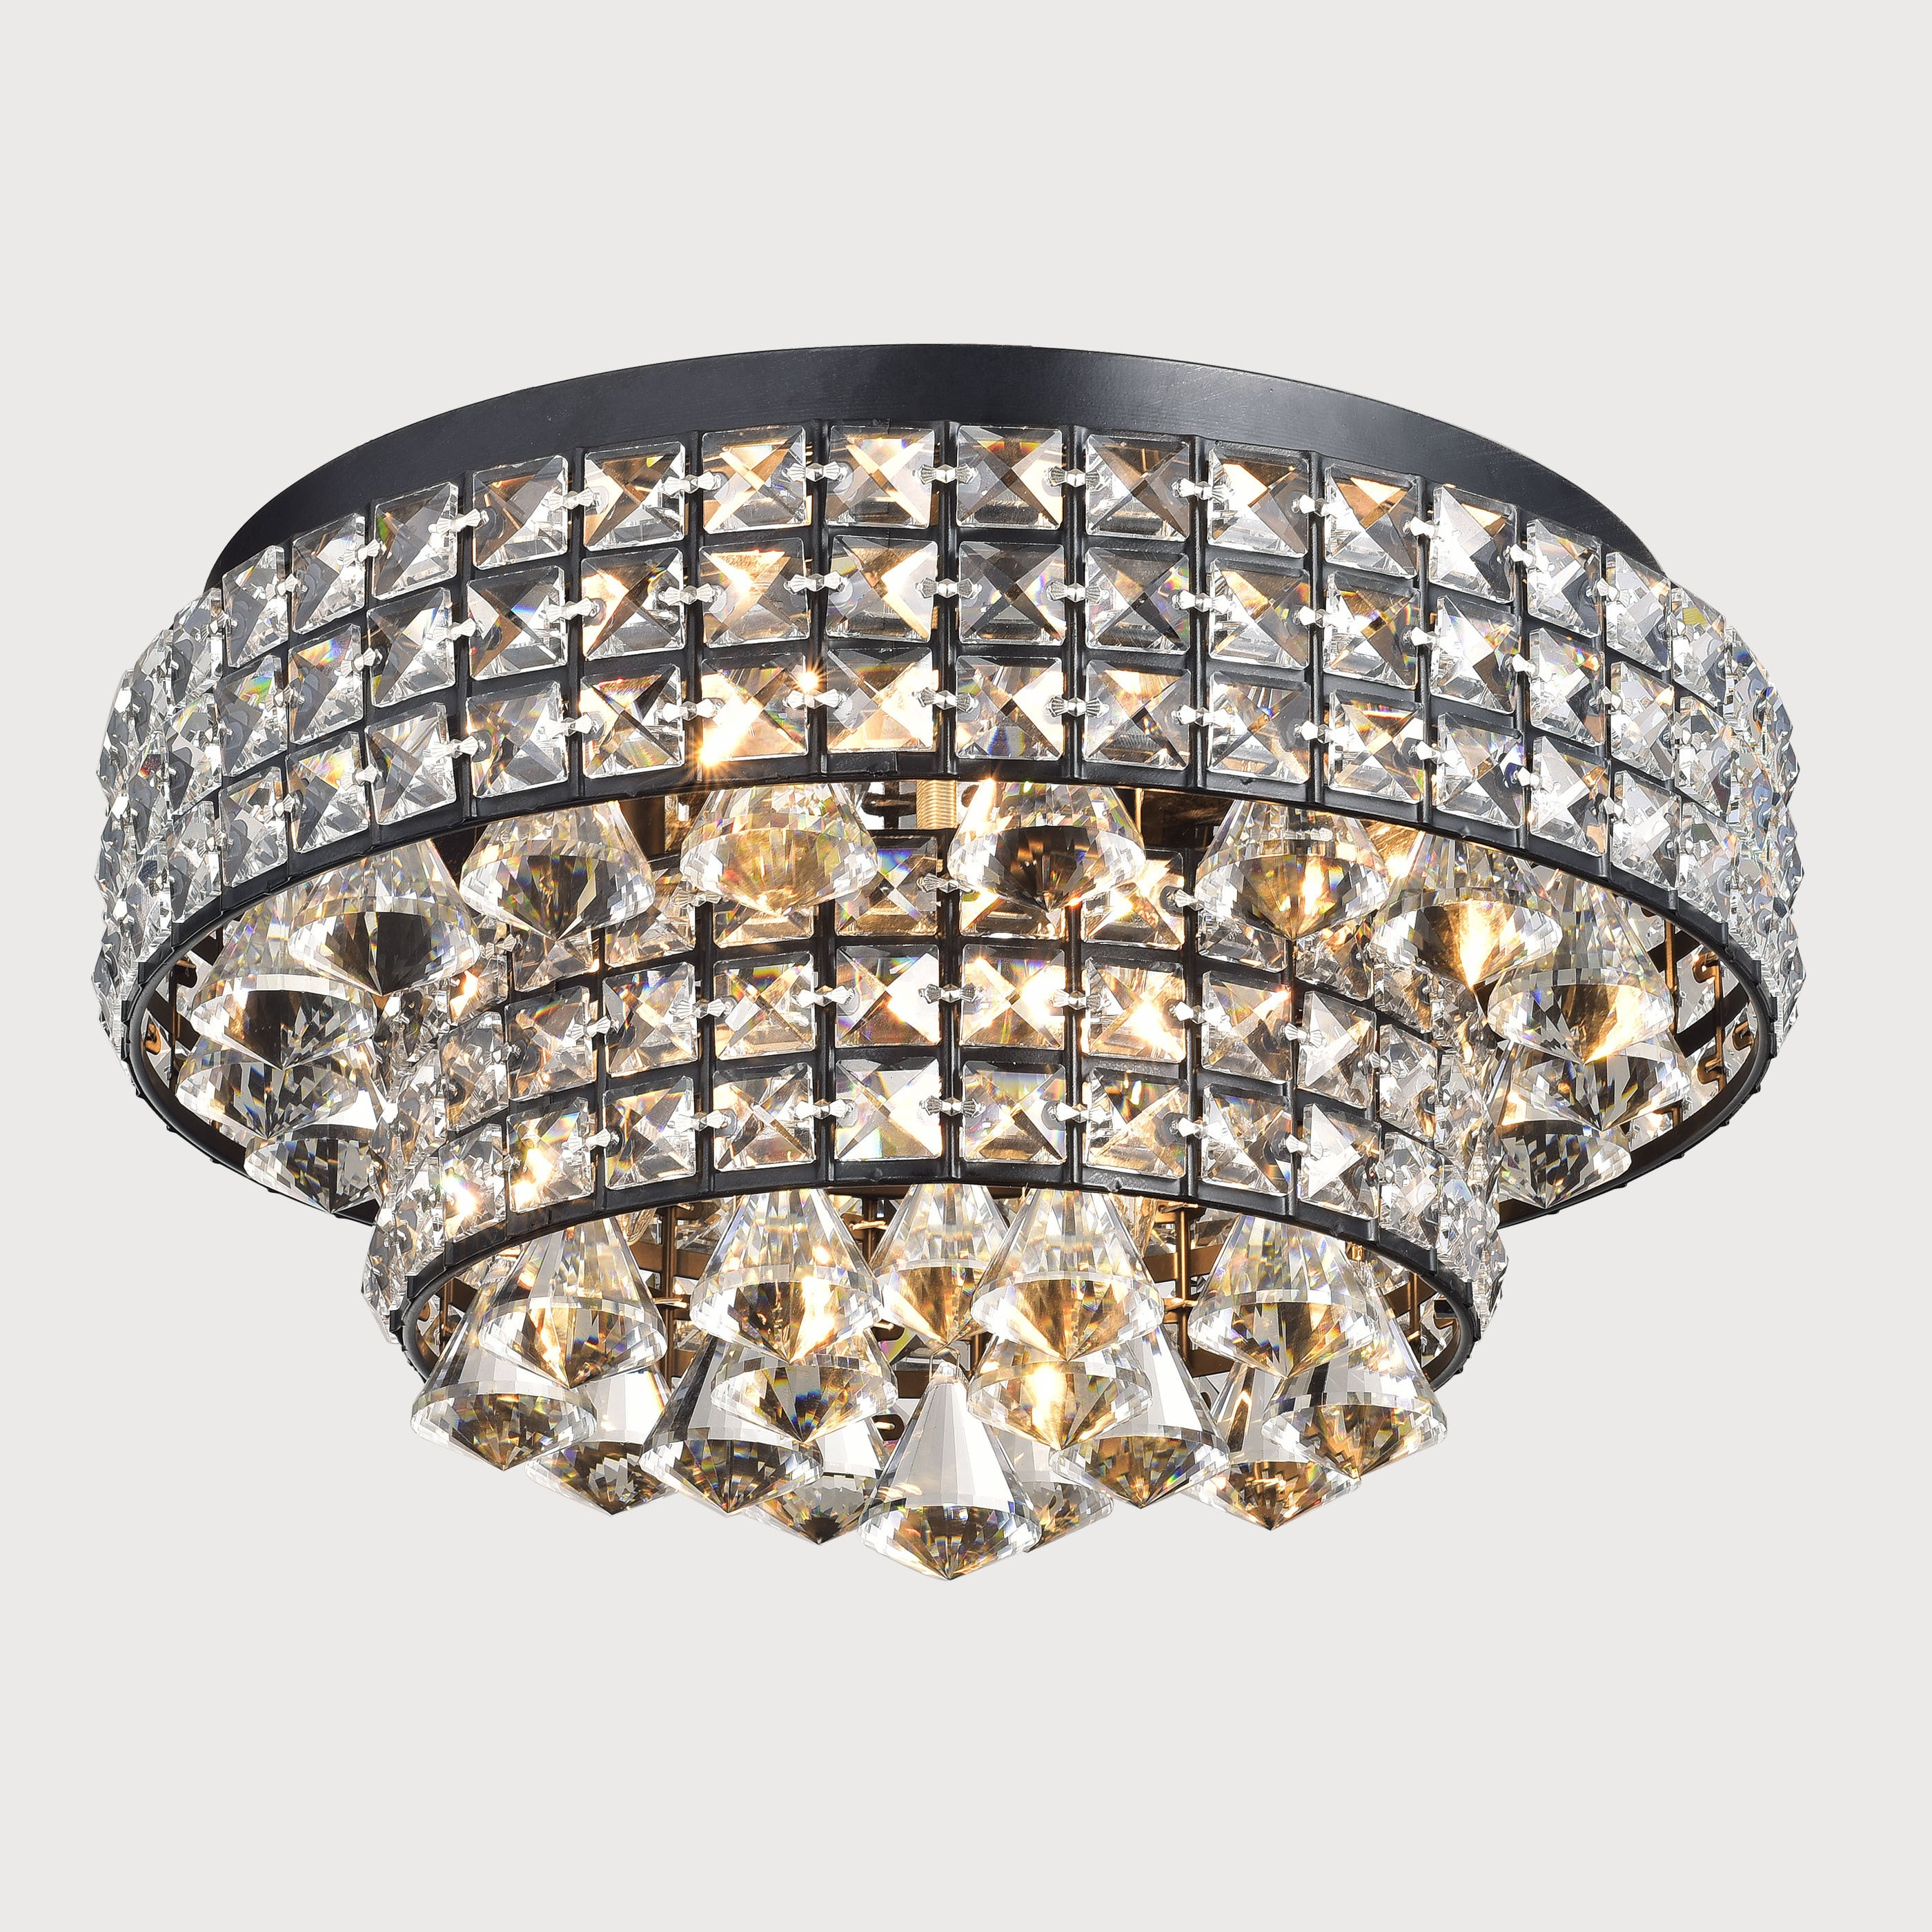 Jolie antique black two tier crystal shades flush mount chandelier jolie antique black two tier crystal shades flush mount chandelier free shipping today overstock 17762689 arubaitofo Images